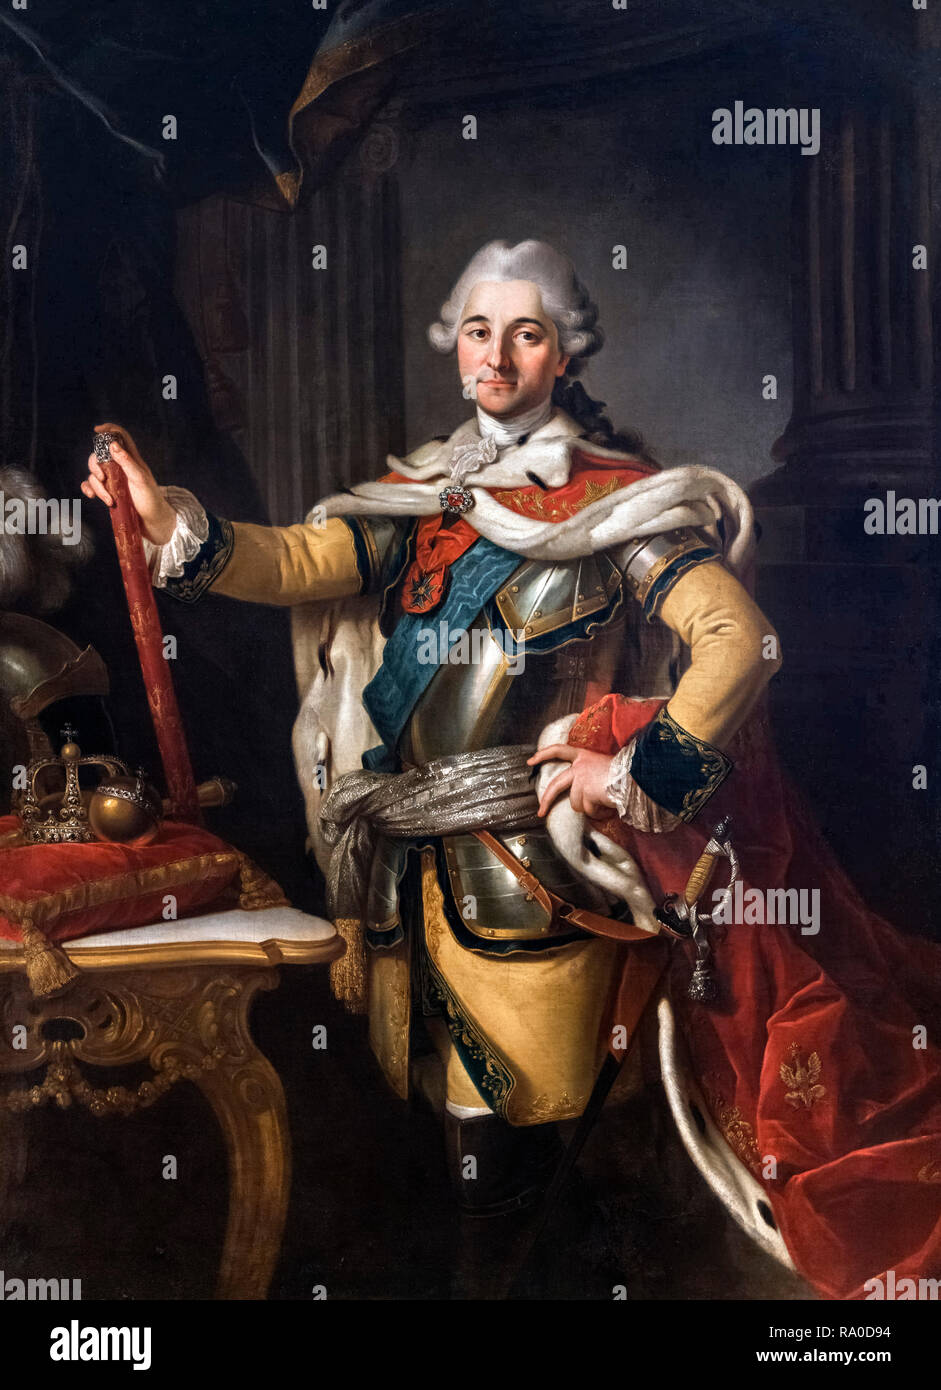 Portrait of Stanisław August Poniatowski (1732-1798) by Per Krafft the Elder (1724-1793), oil on canvas, c.1767. Stanislaw II Augustus was King of Poland and Grand Duke of Lithuania from 1764 to 1795, and was the last monarch of the Polish–Lithuanian Commonwealth. - Stock Image